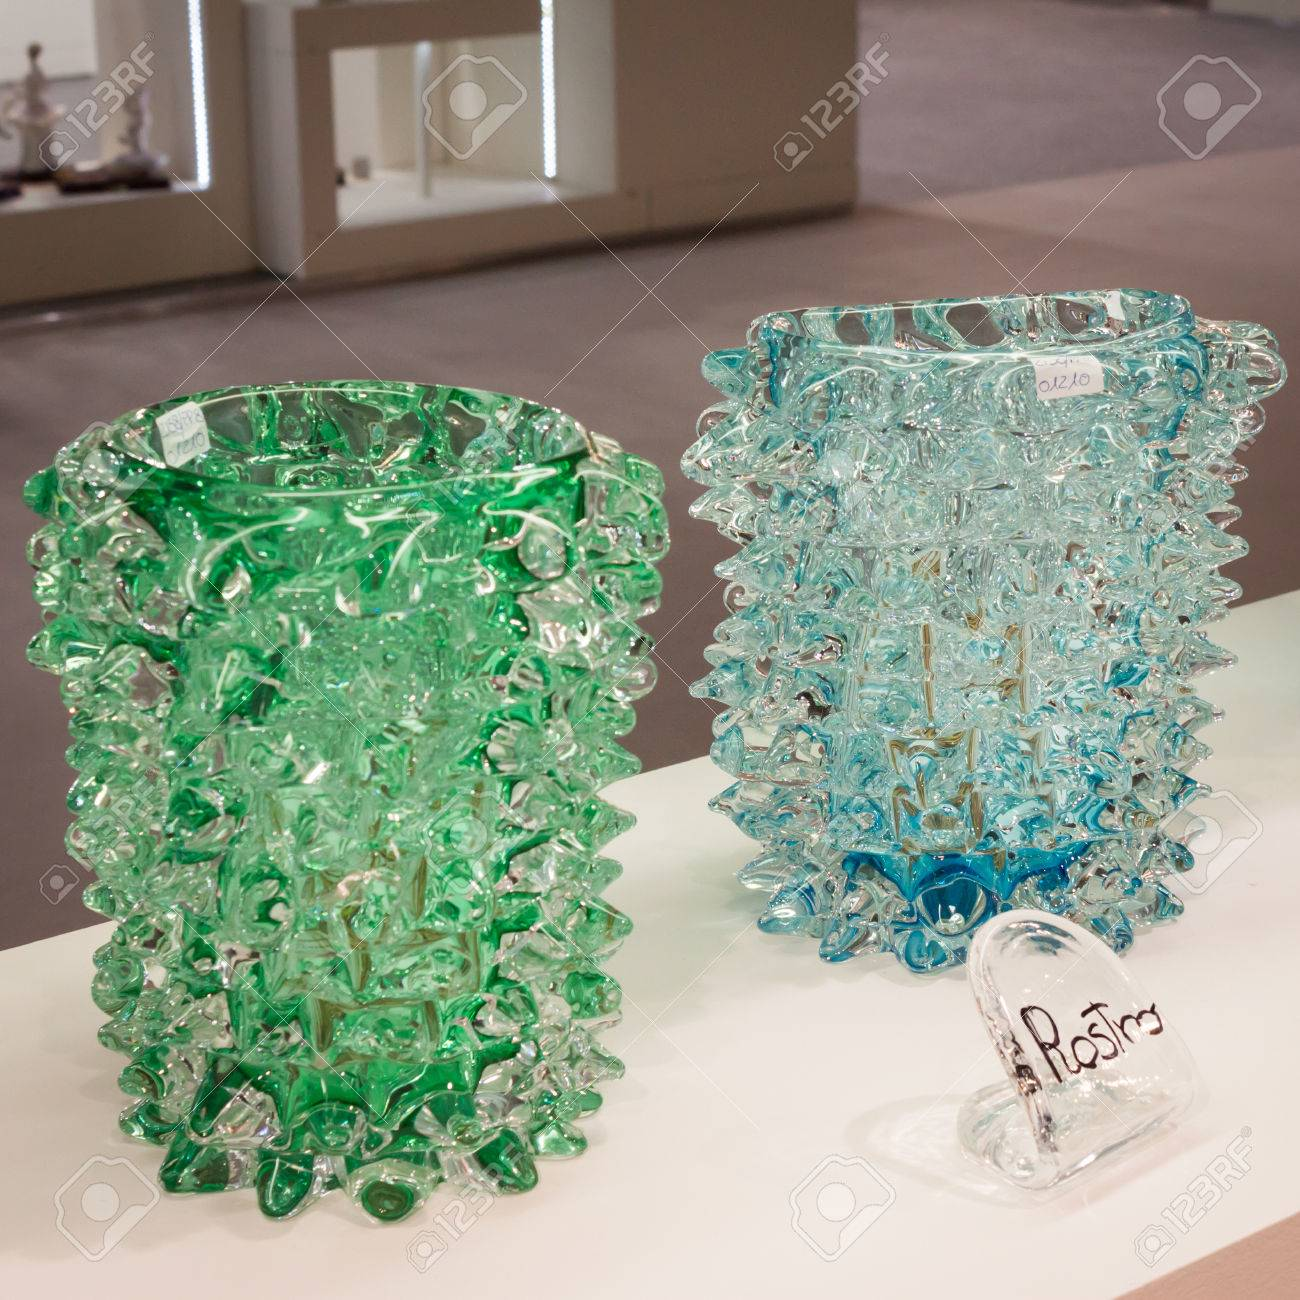 Vase De Murano Milan Italy January 20 Murano Glass Vases On Display At Homi